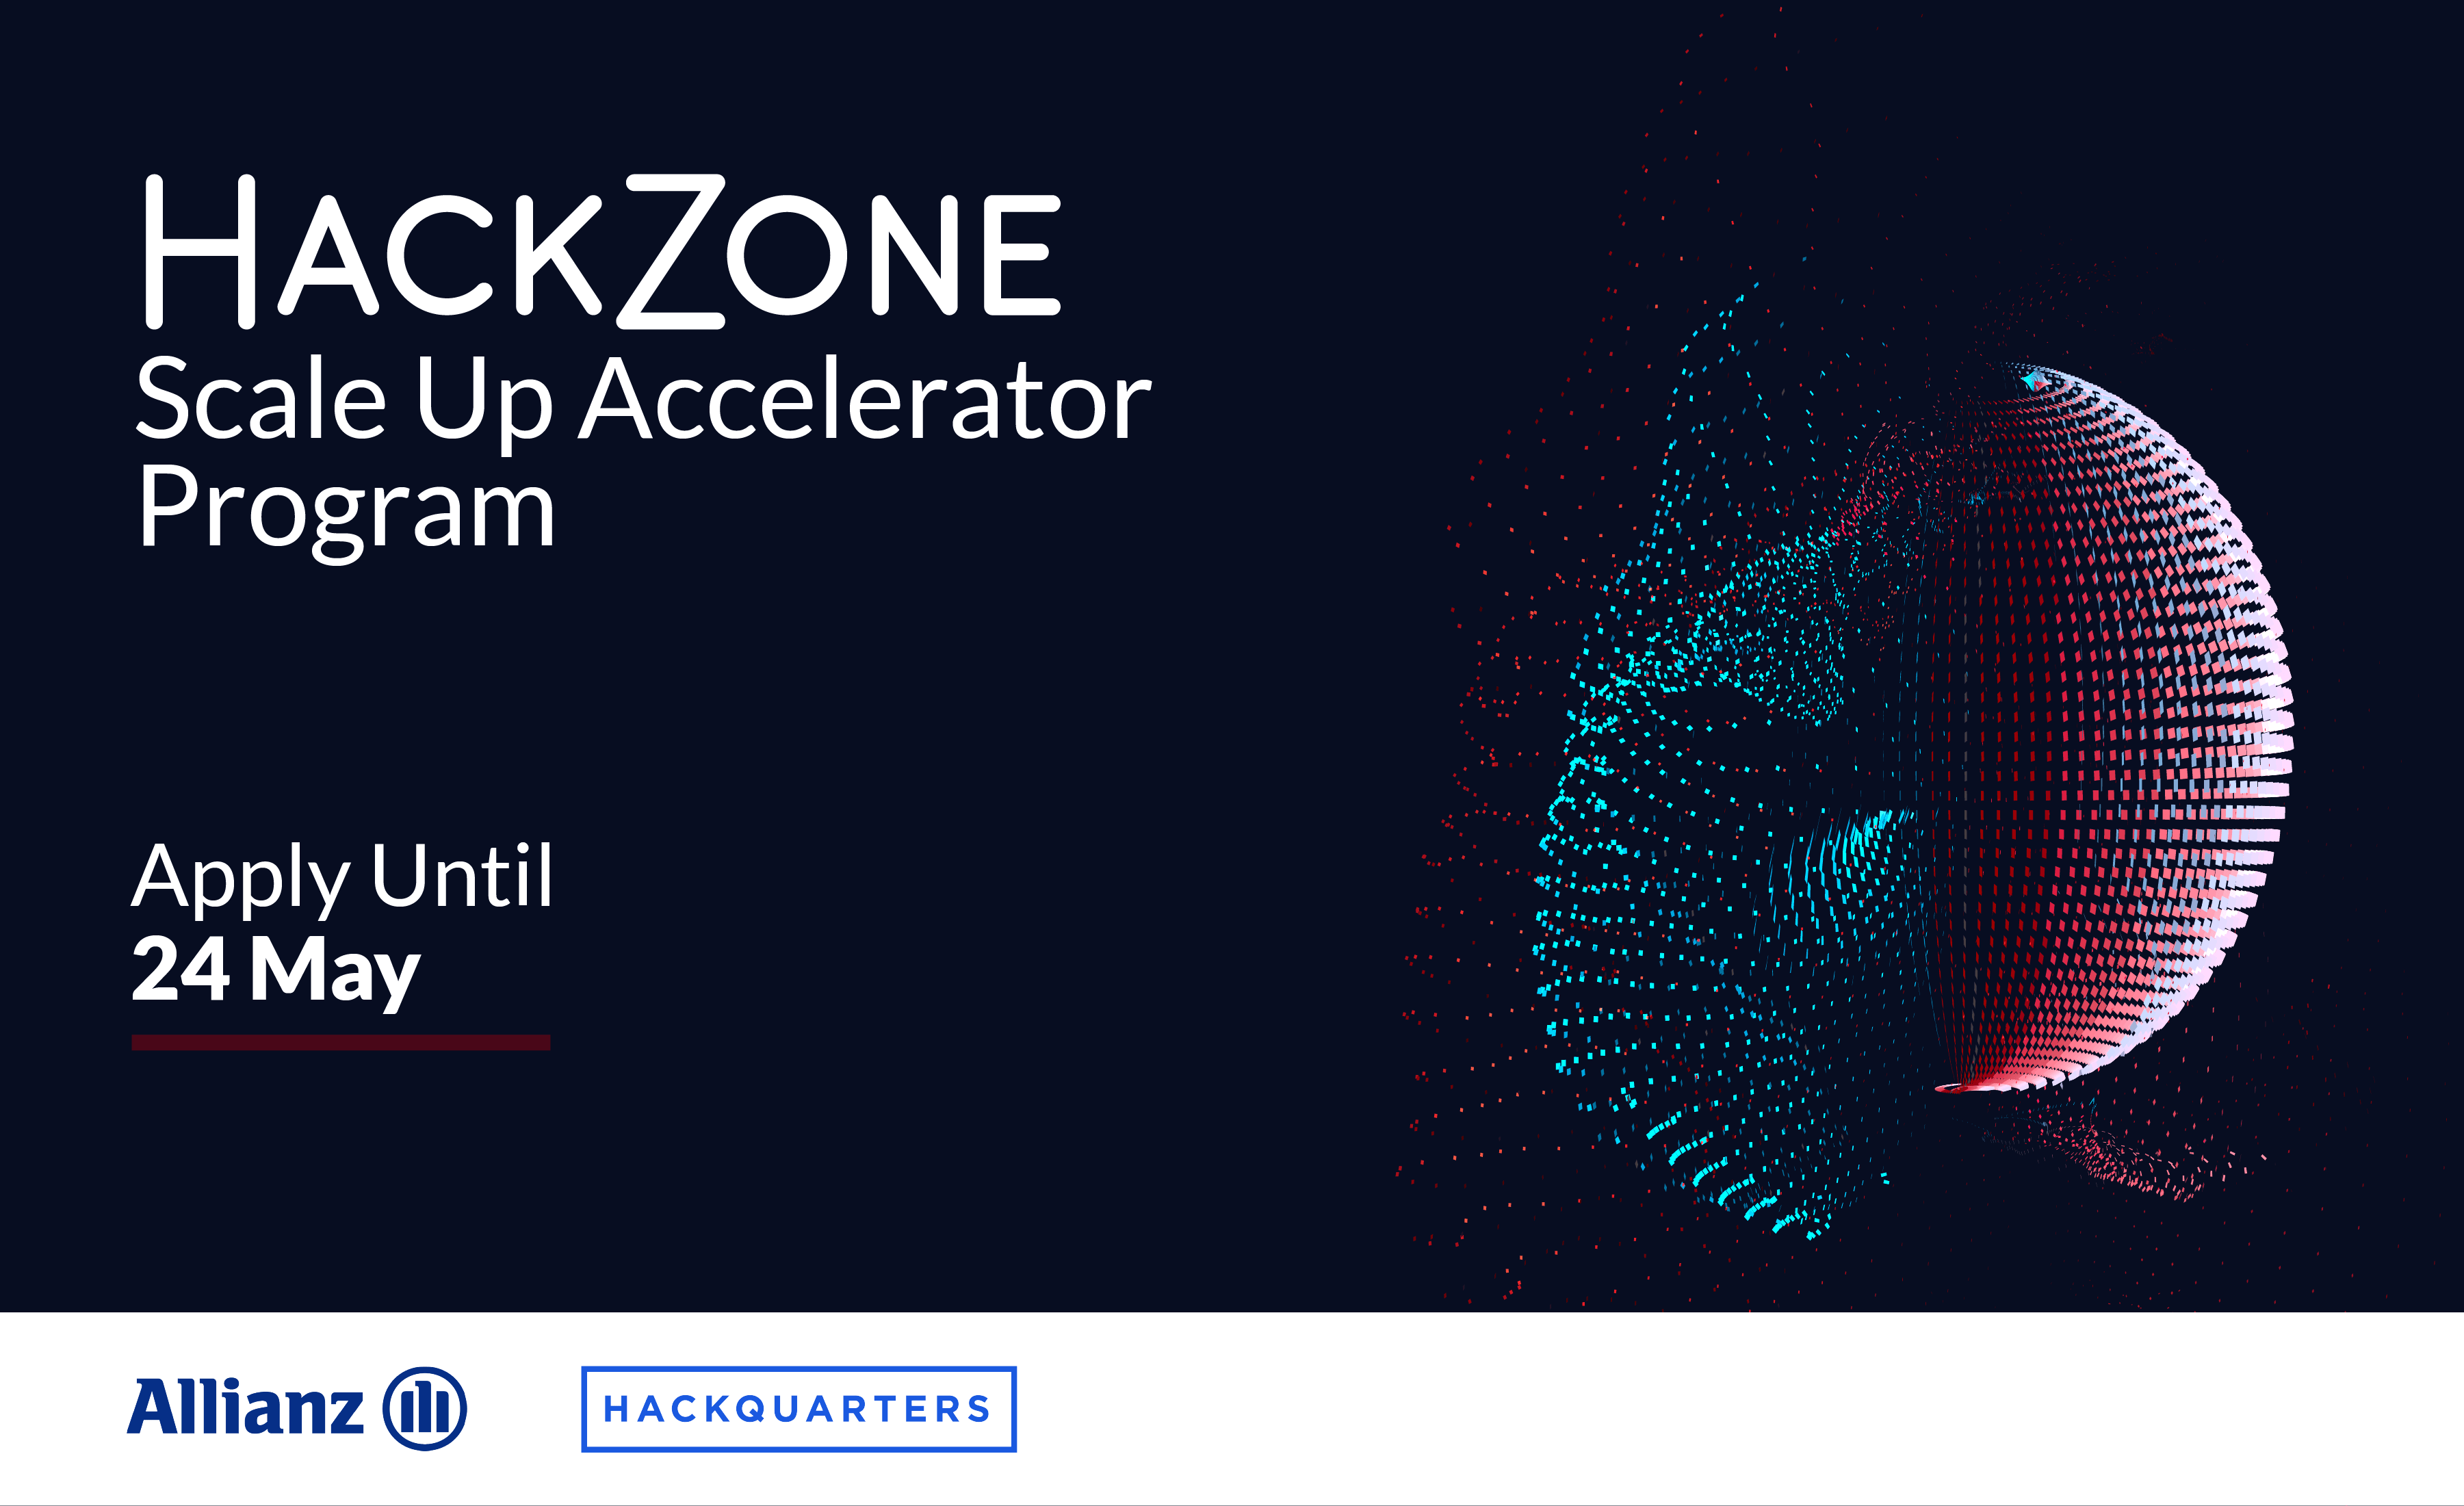 18 startups were accepted to the program, where they had a chance to access Allianz APIs to work on new products with Allianz and create new customer experiences.